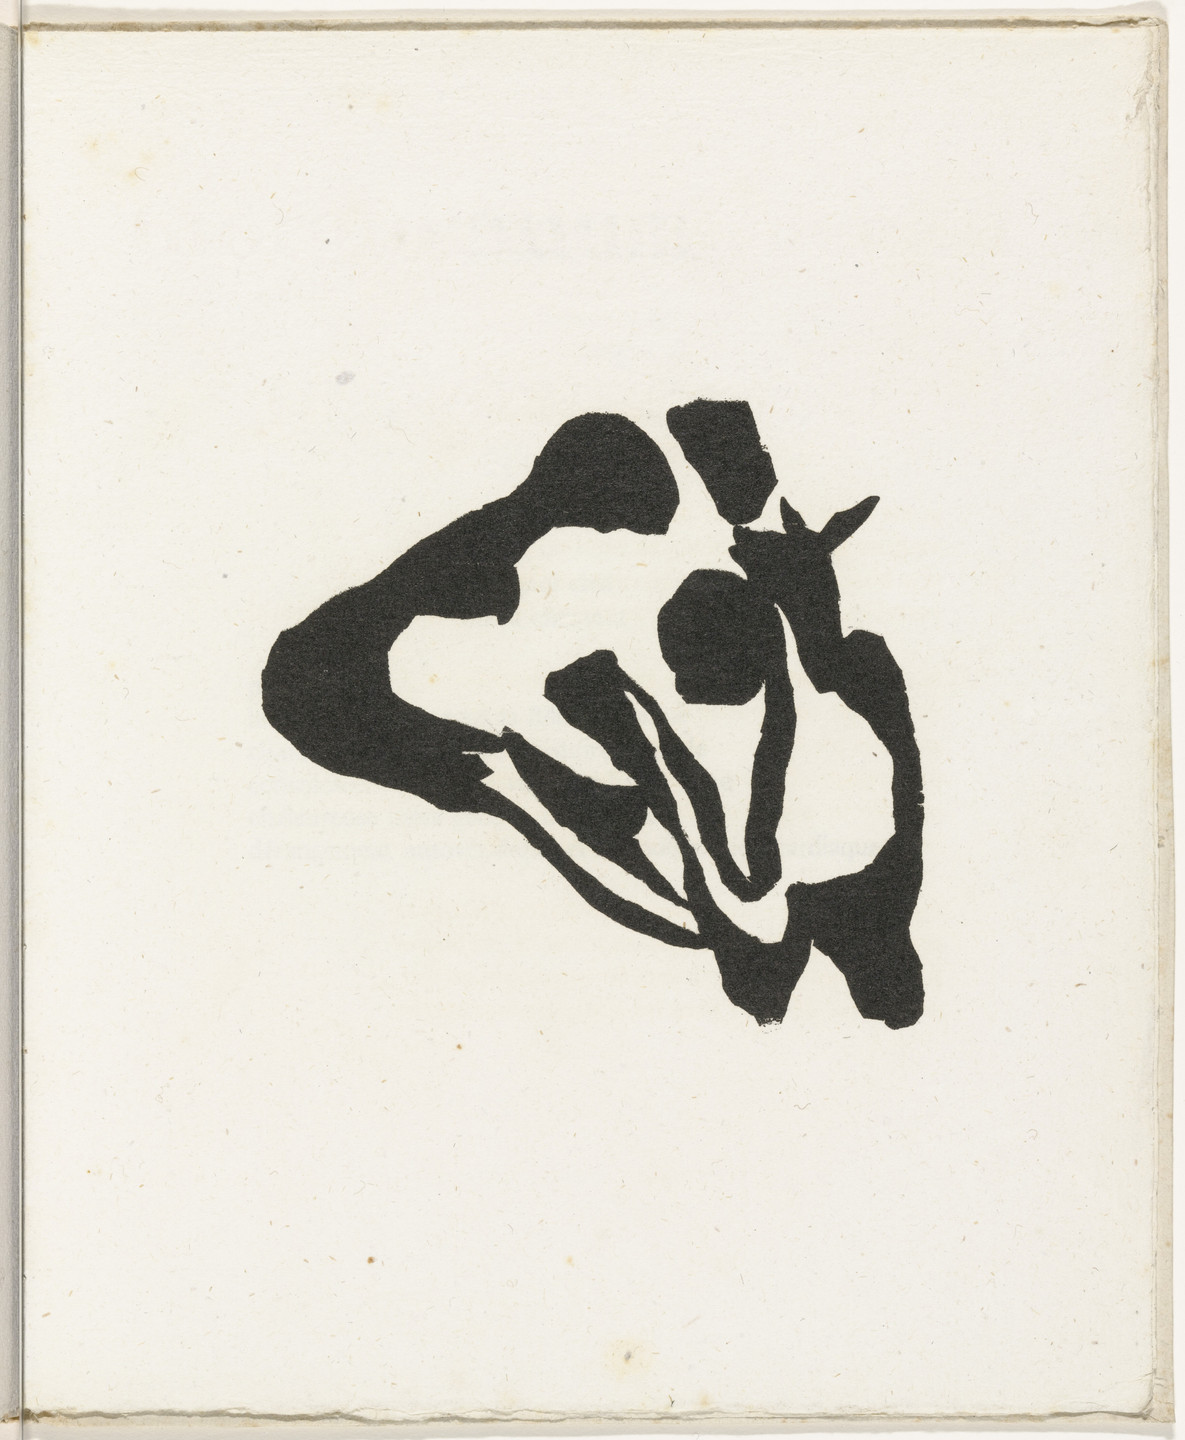 Jean (Hans) Arp. Plate (folio 30) from Cinéma calendrier du coeur abstrait, maisons (Cinema Calendar of the Abstract Heart, Houses). 1920